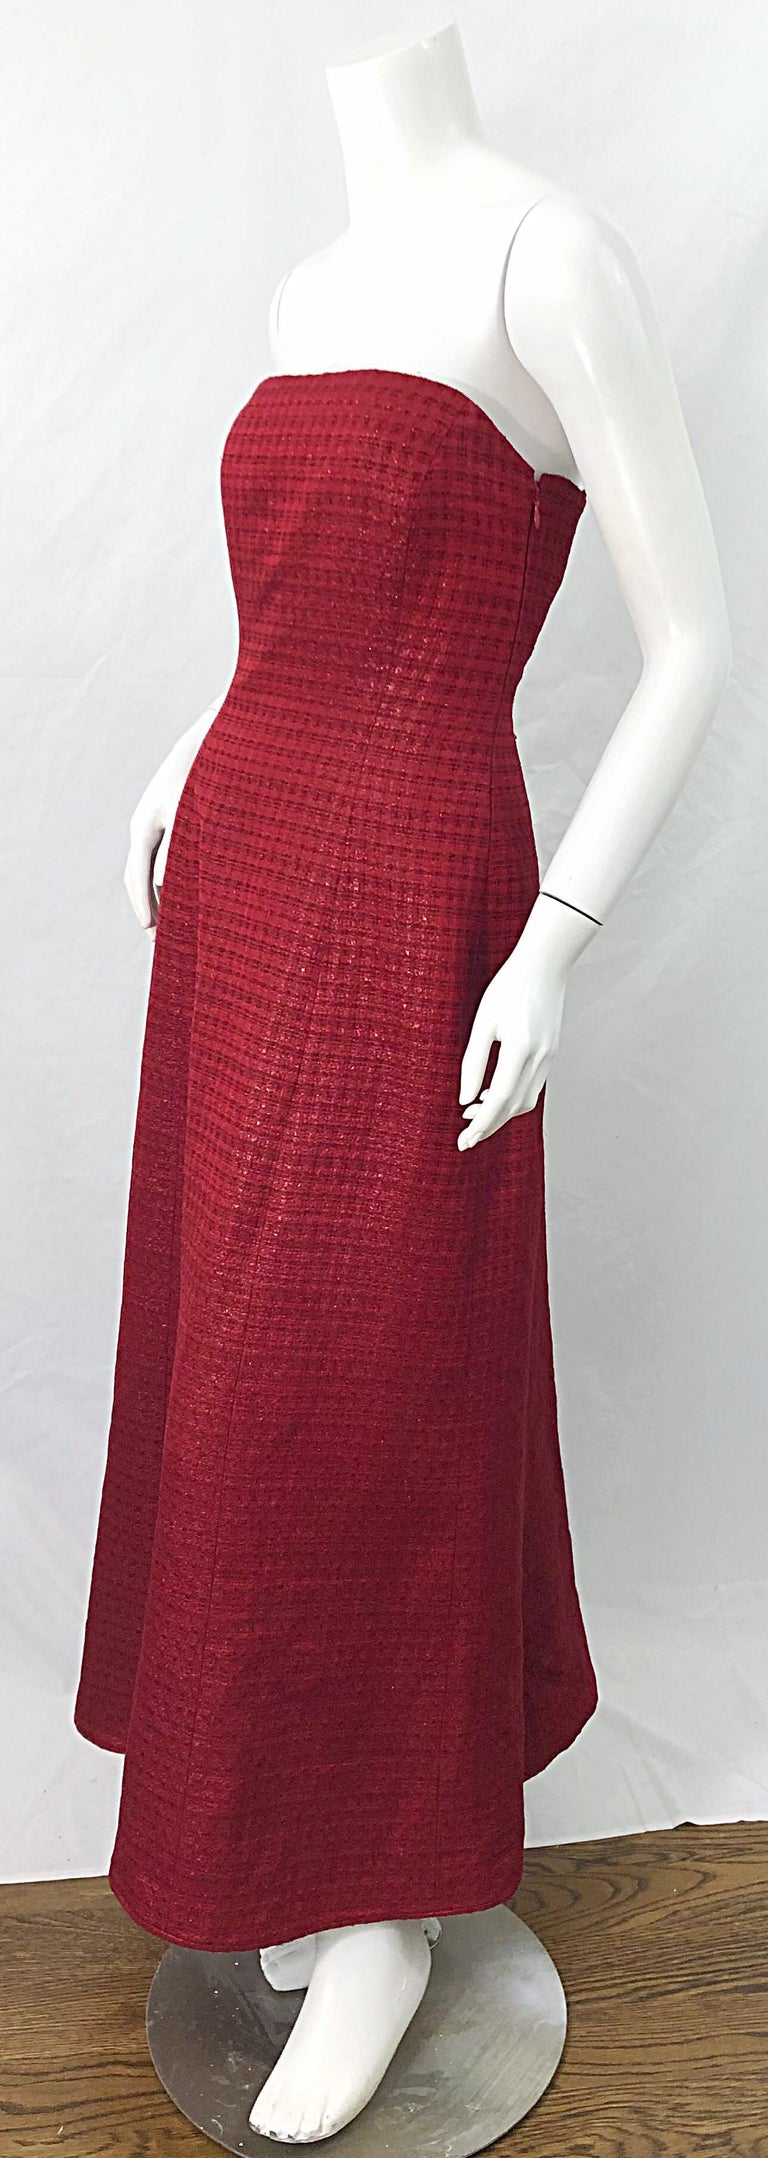 1990s Louis Feraud Cranberry Red Strapless Vintage 90s Silk + Wool Gown Dress For Sale 2